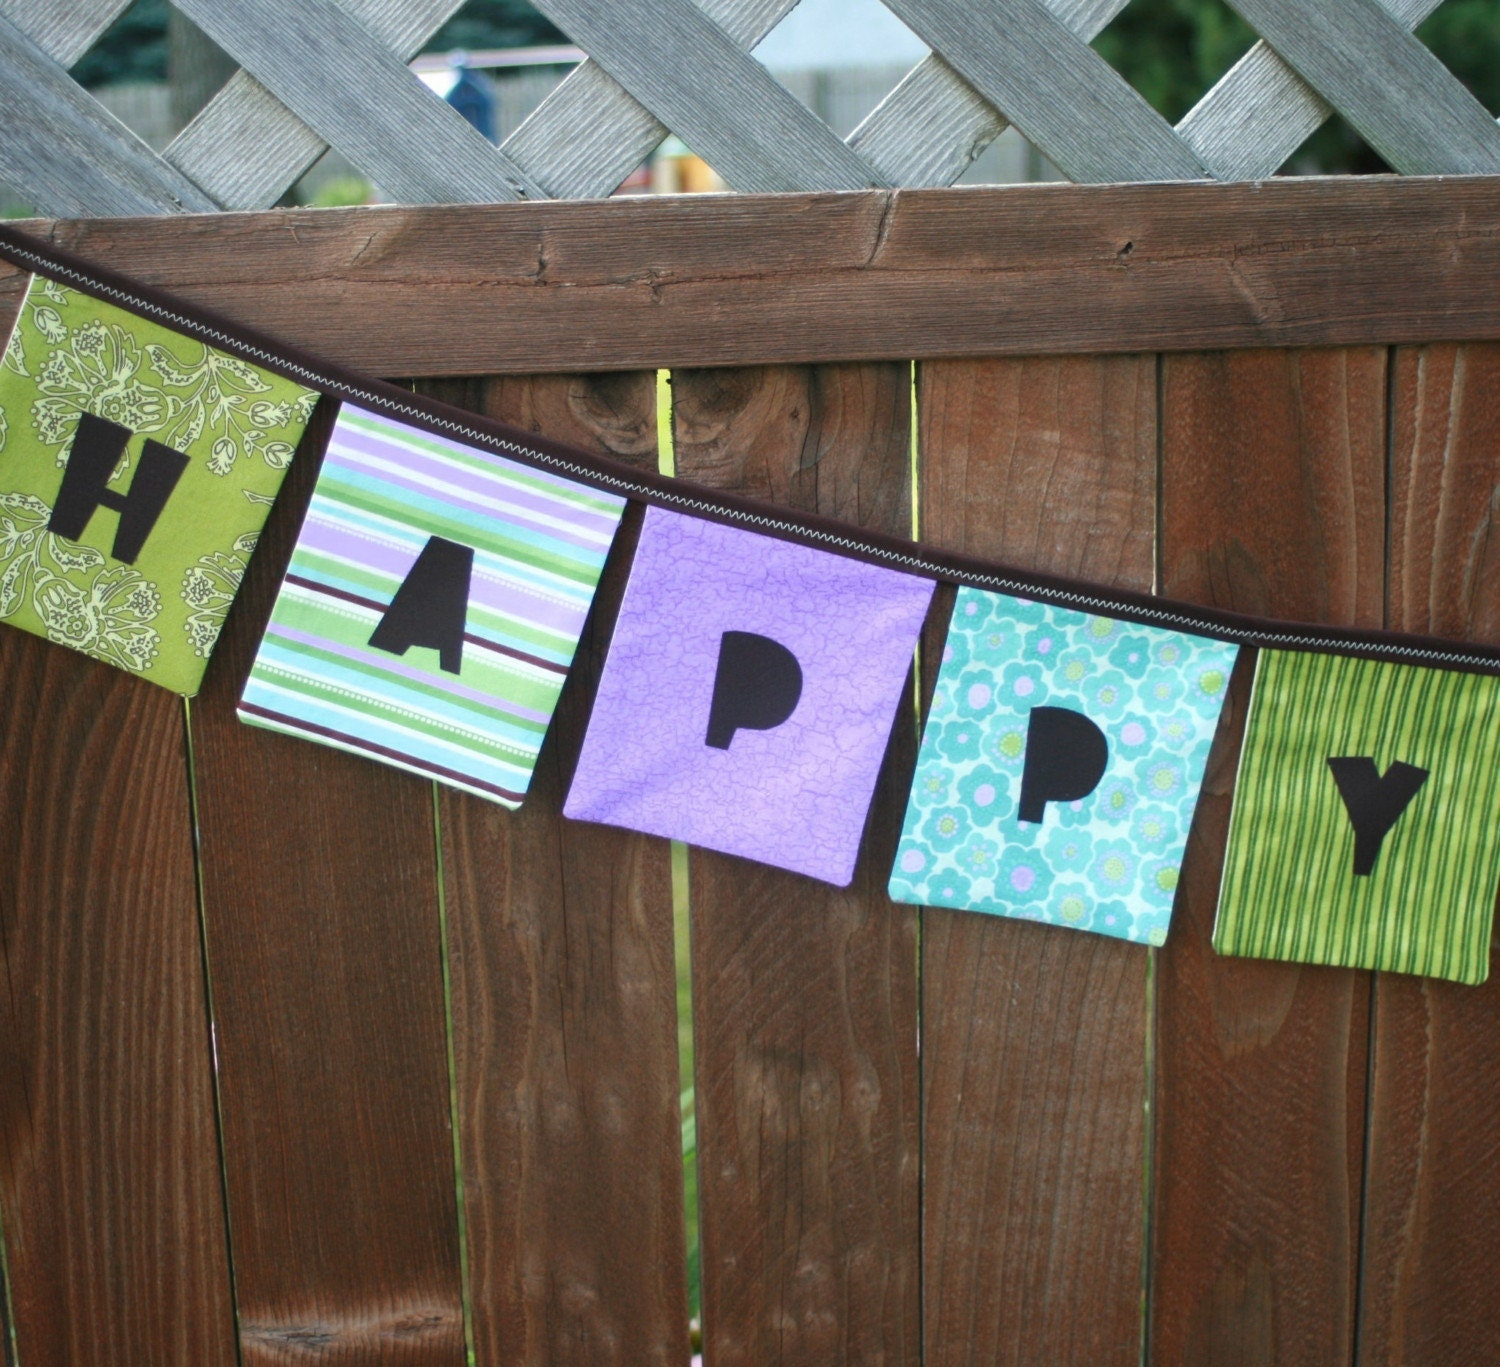 HAPPY BIRTHDAY Reusable Fabric Banner - Purples, Greens, Blues - ThePolkaDotTotSpot